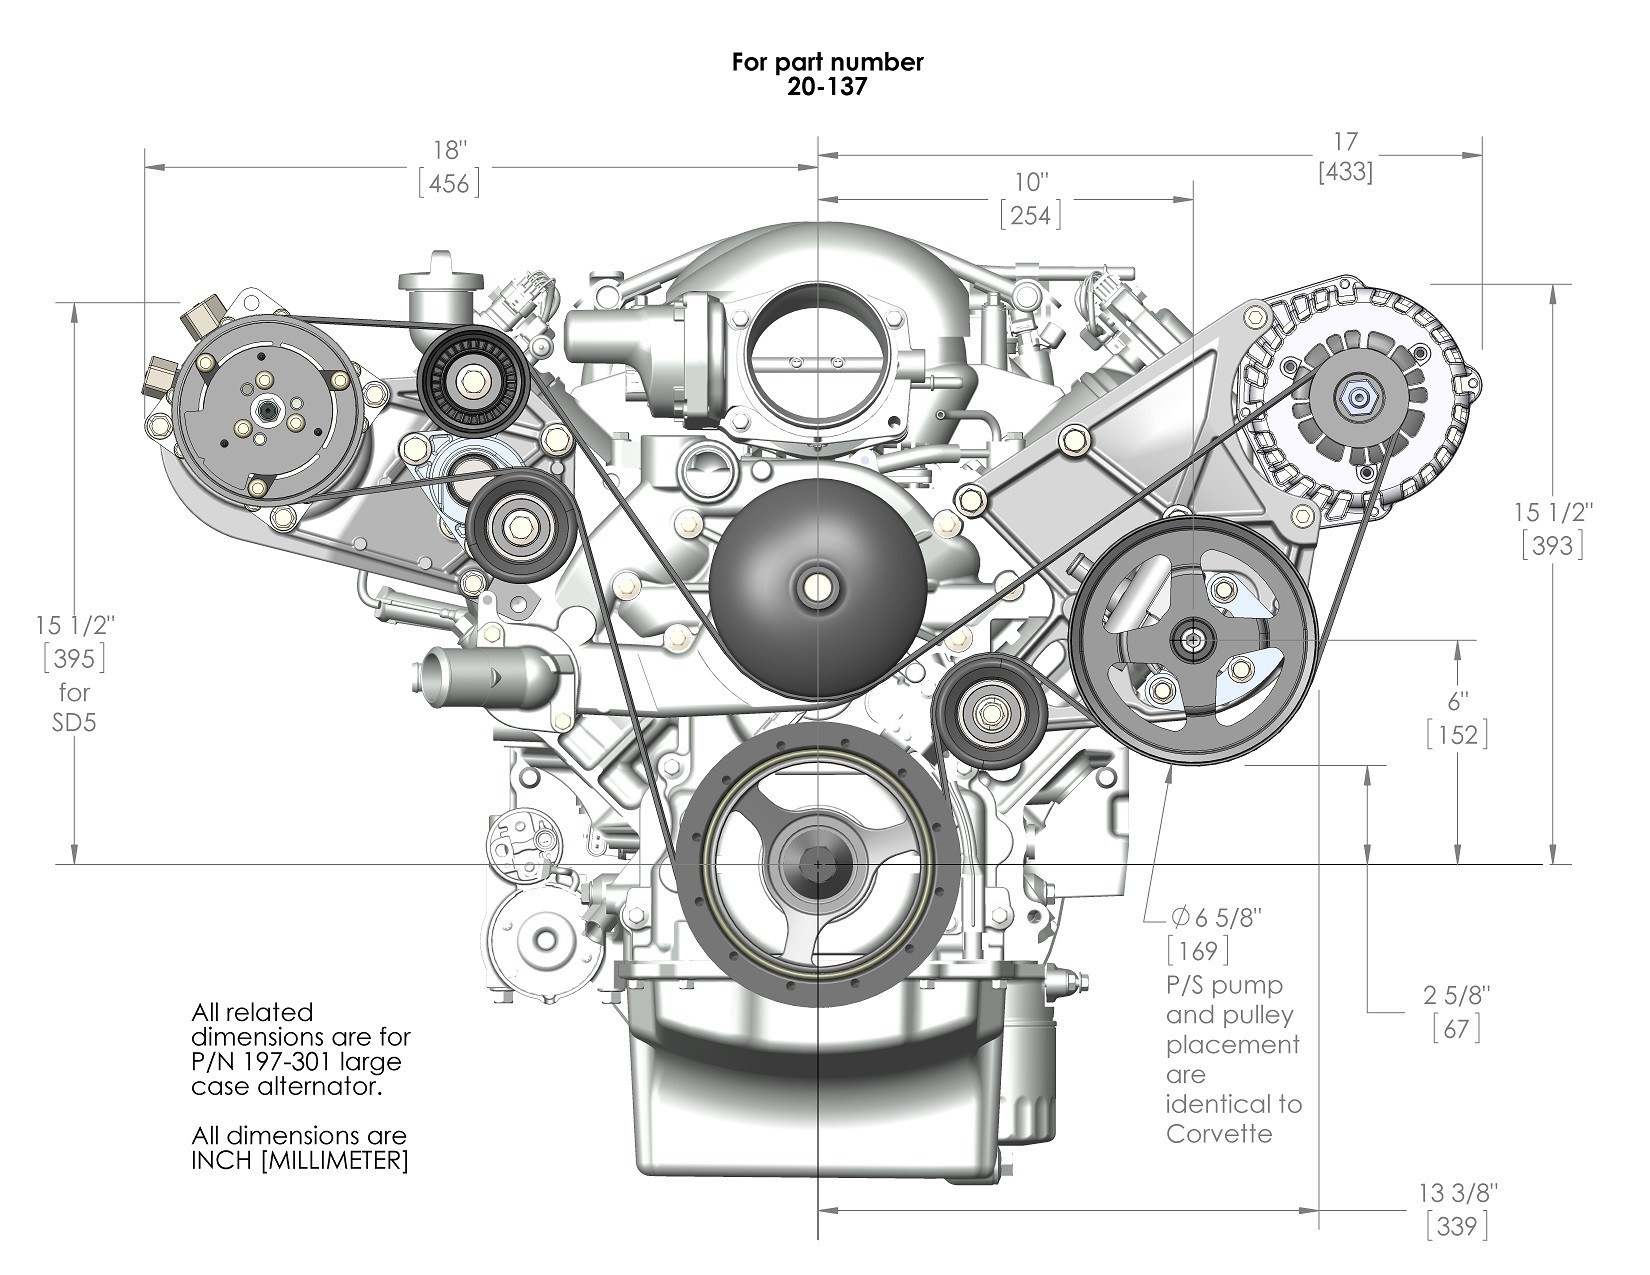 Car Engine Diagram | My Wiring DIagram